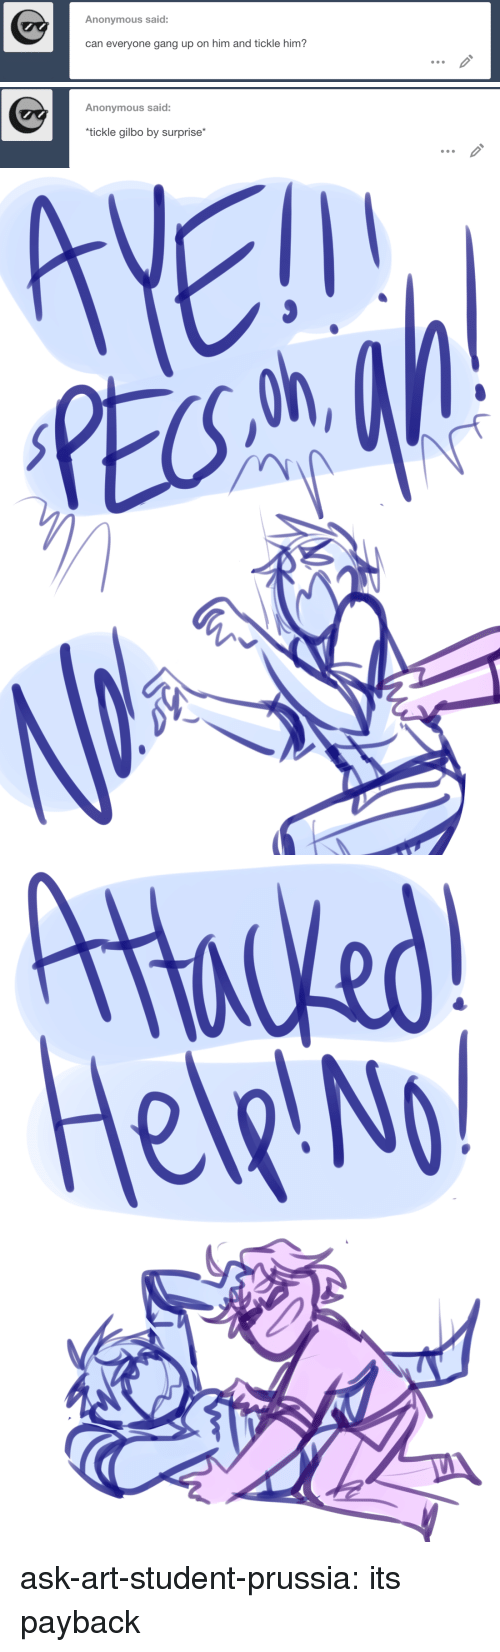 payback: Anonymous said:  can everyone gang up on him and tickle him?   Anonymous said:  tickle gilbo by surprise   gh,  [ヘ   ttaced  Help No ask-art-student-prussia:  its payback